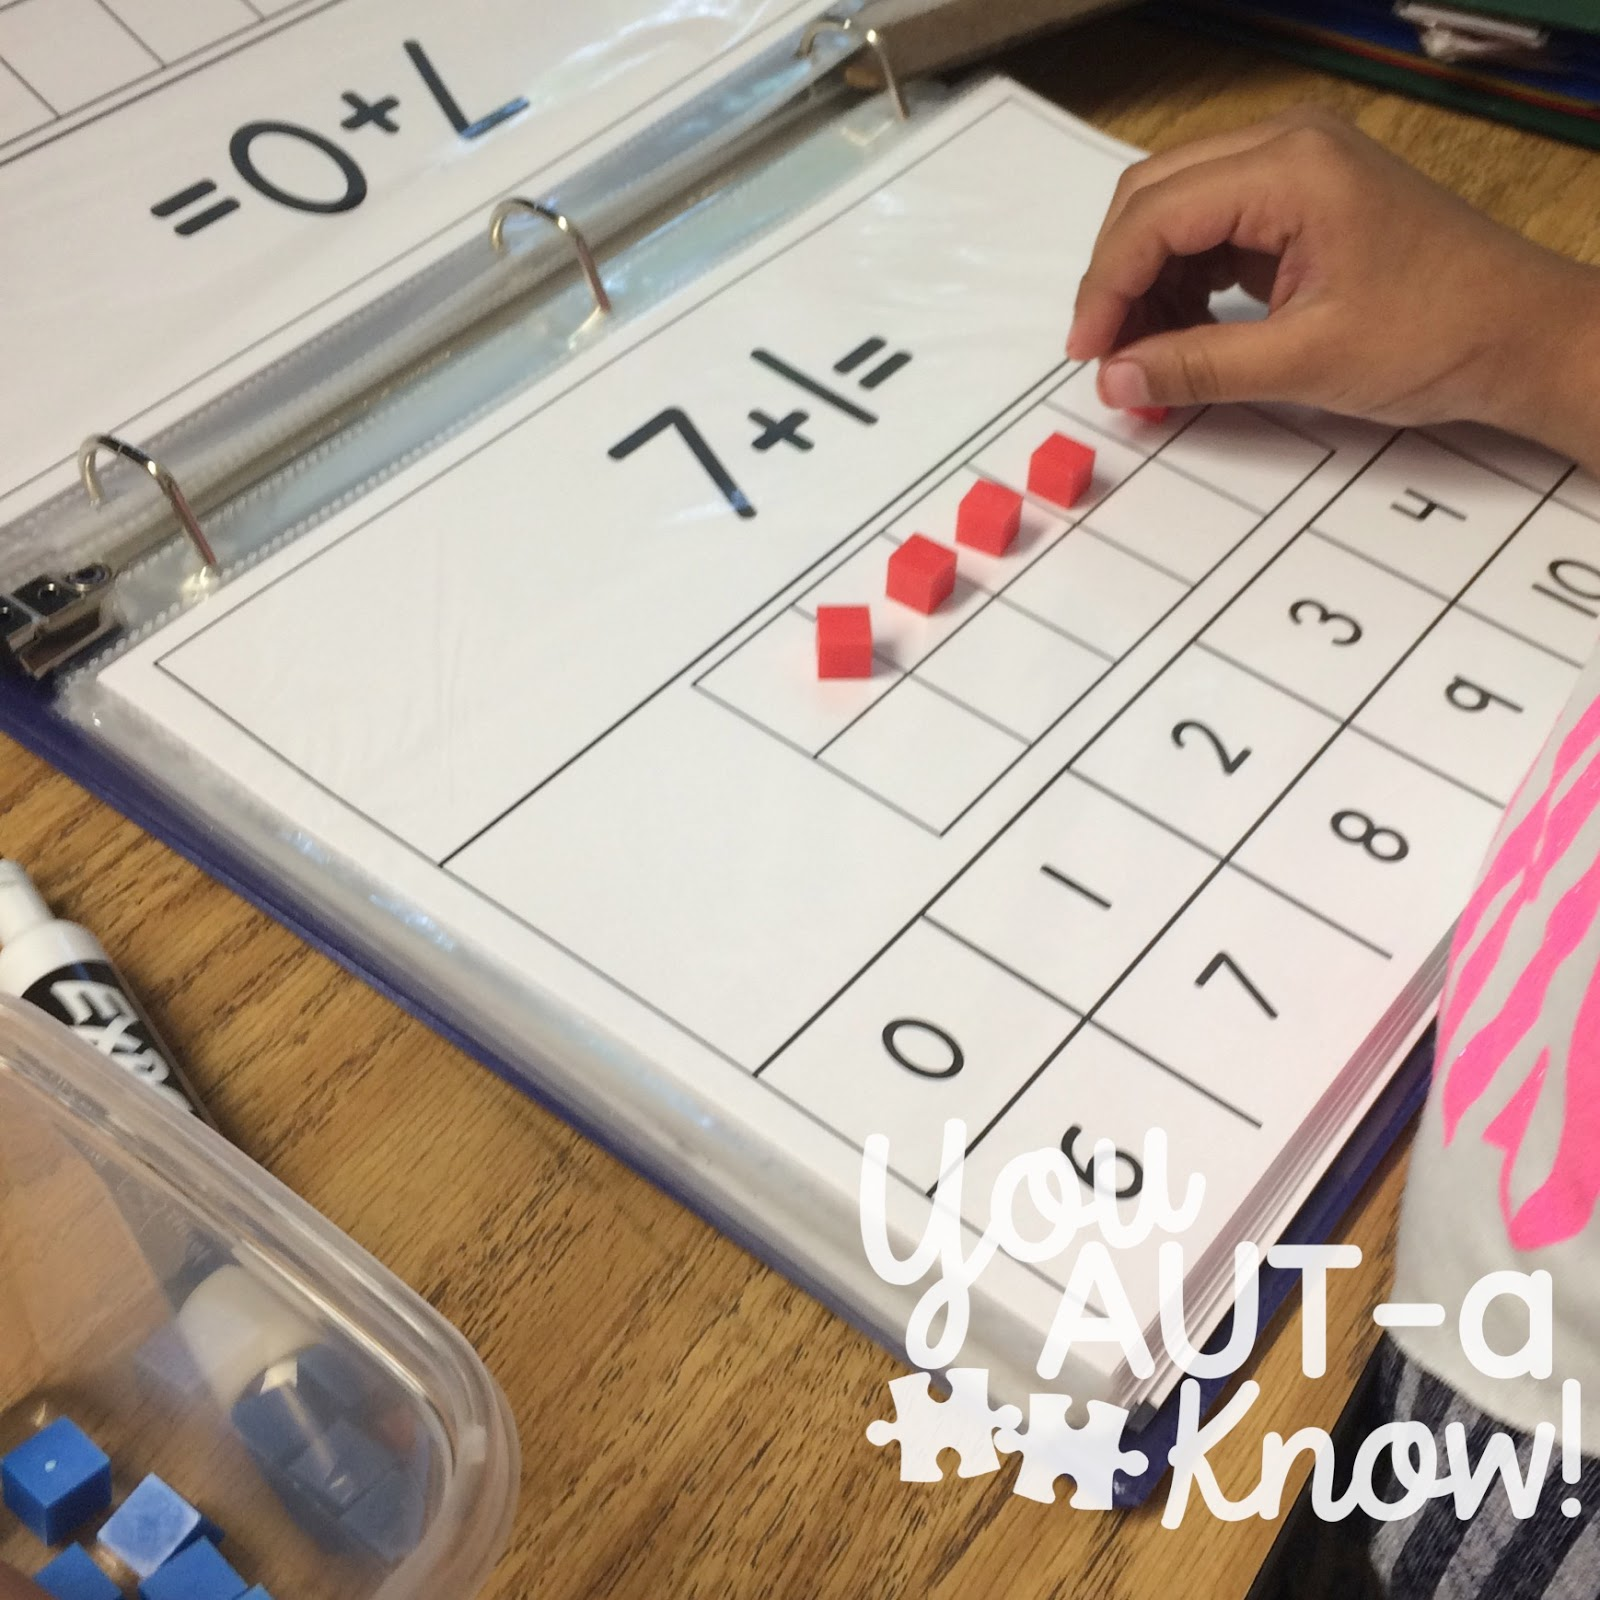 Utilizing manipulatives to teach math skills gives a visual support for students as they begin to add and subtract.